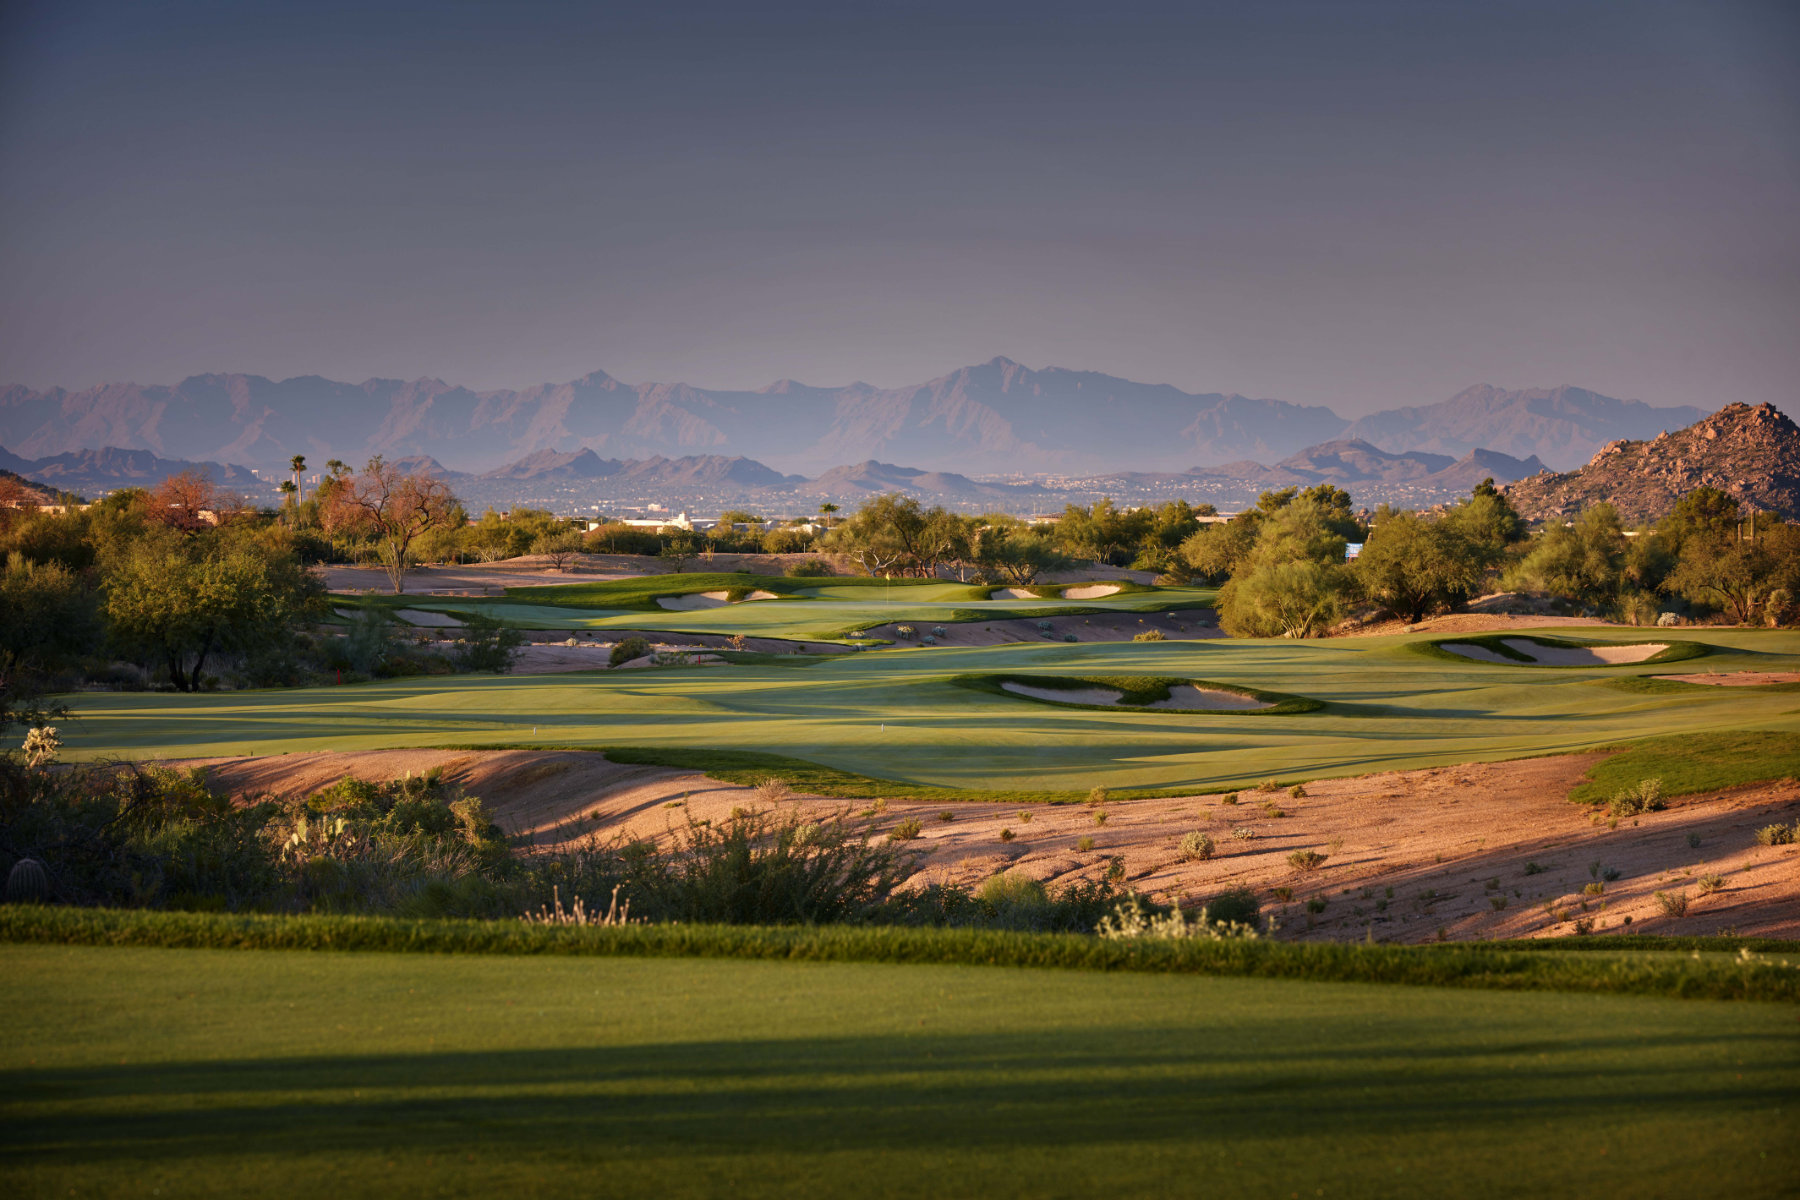 Desert Mountain - Renegade Golf Course